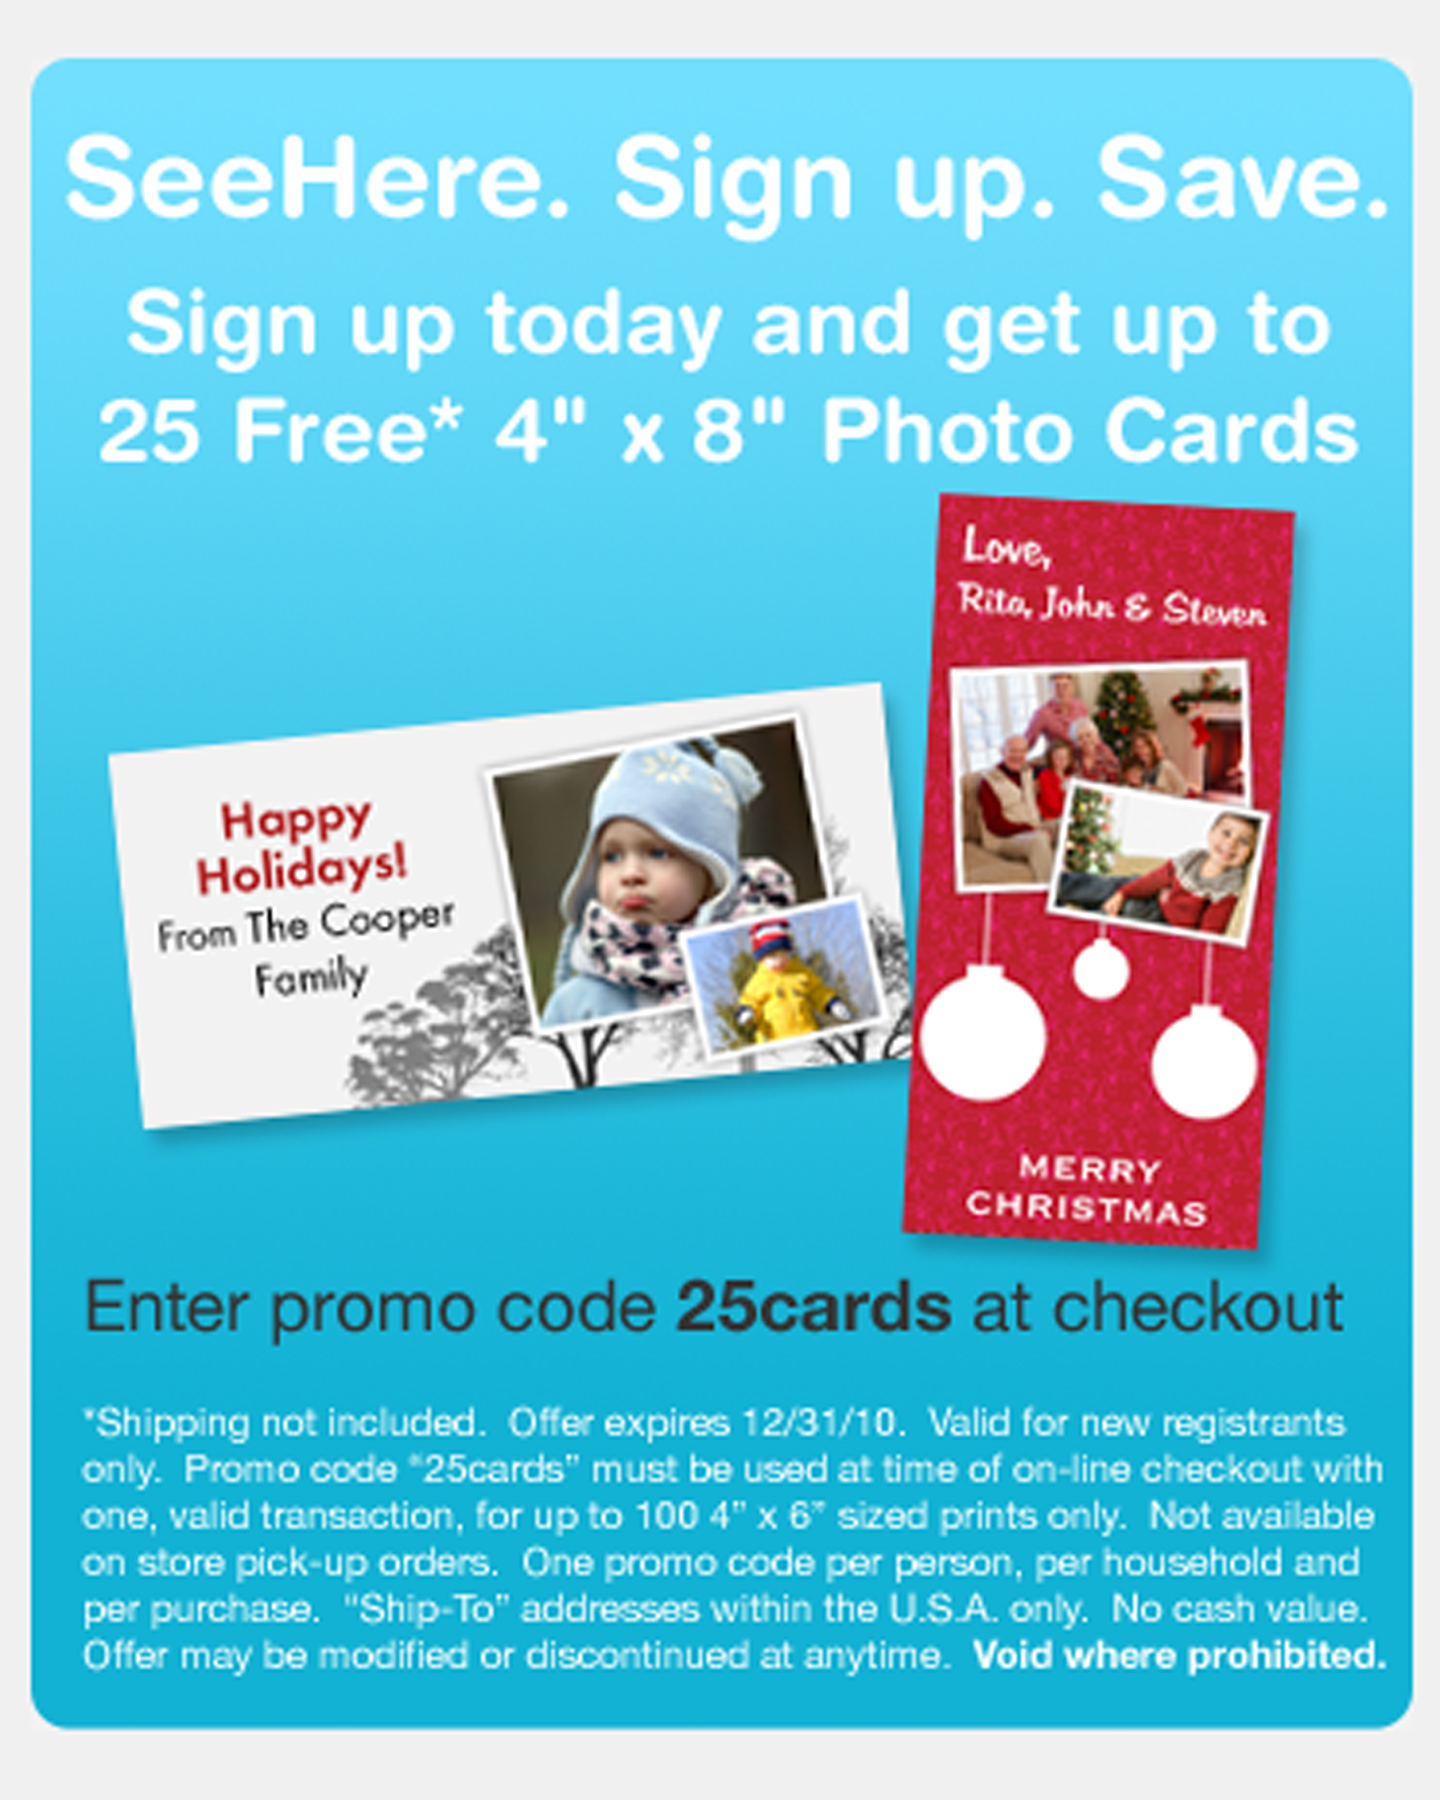 seehere-holiday-card-free